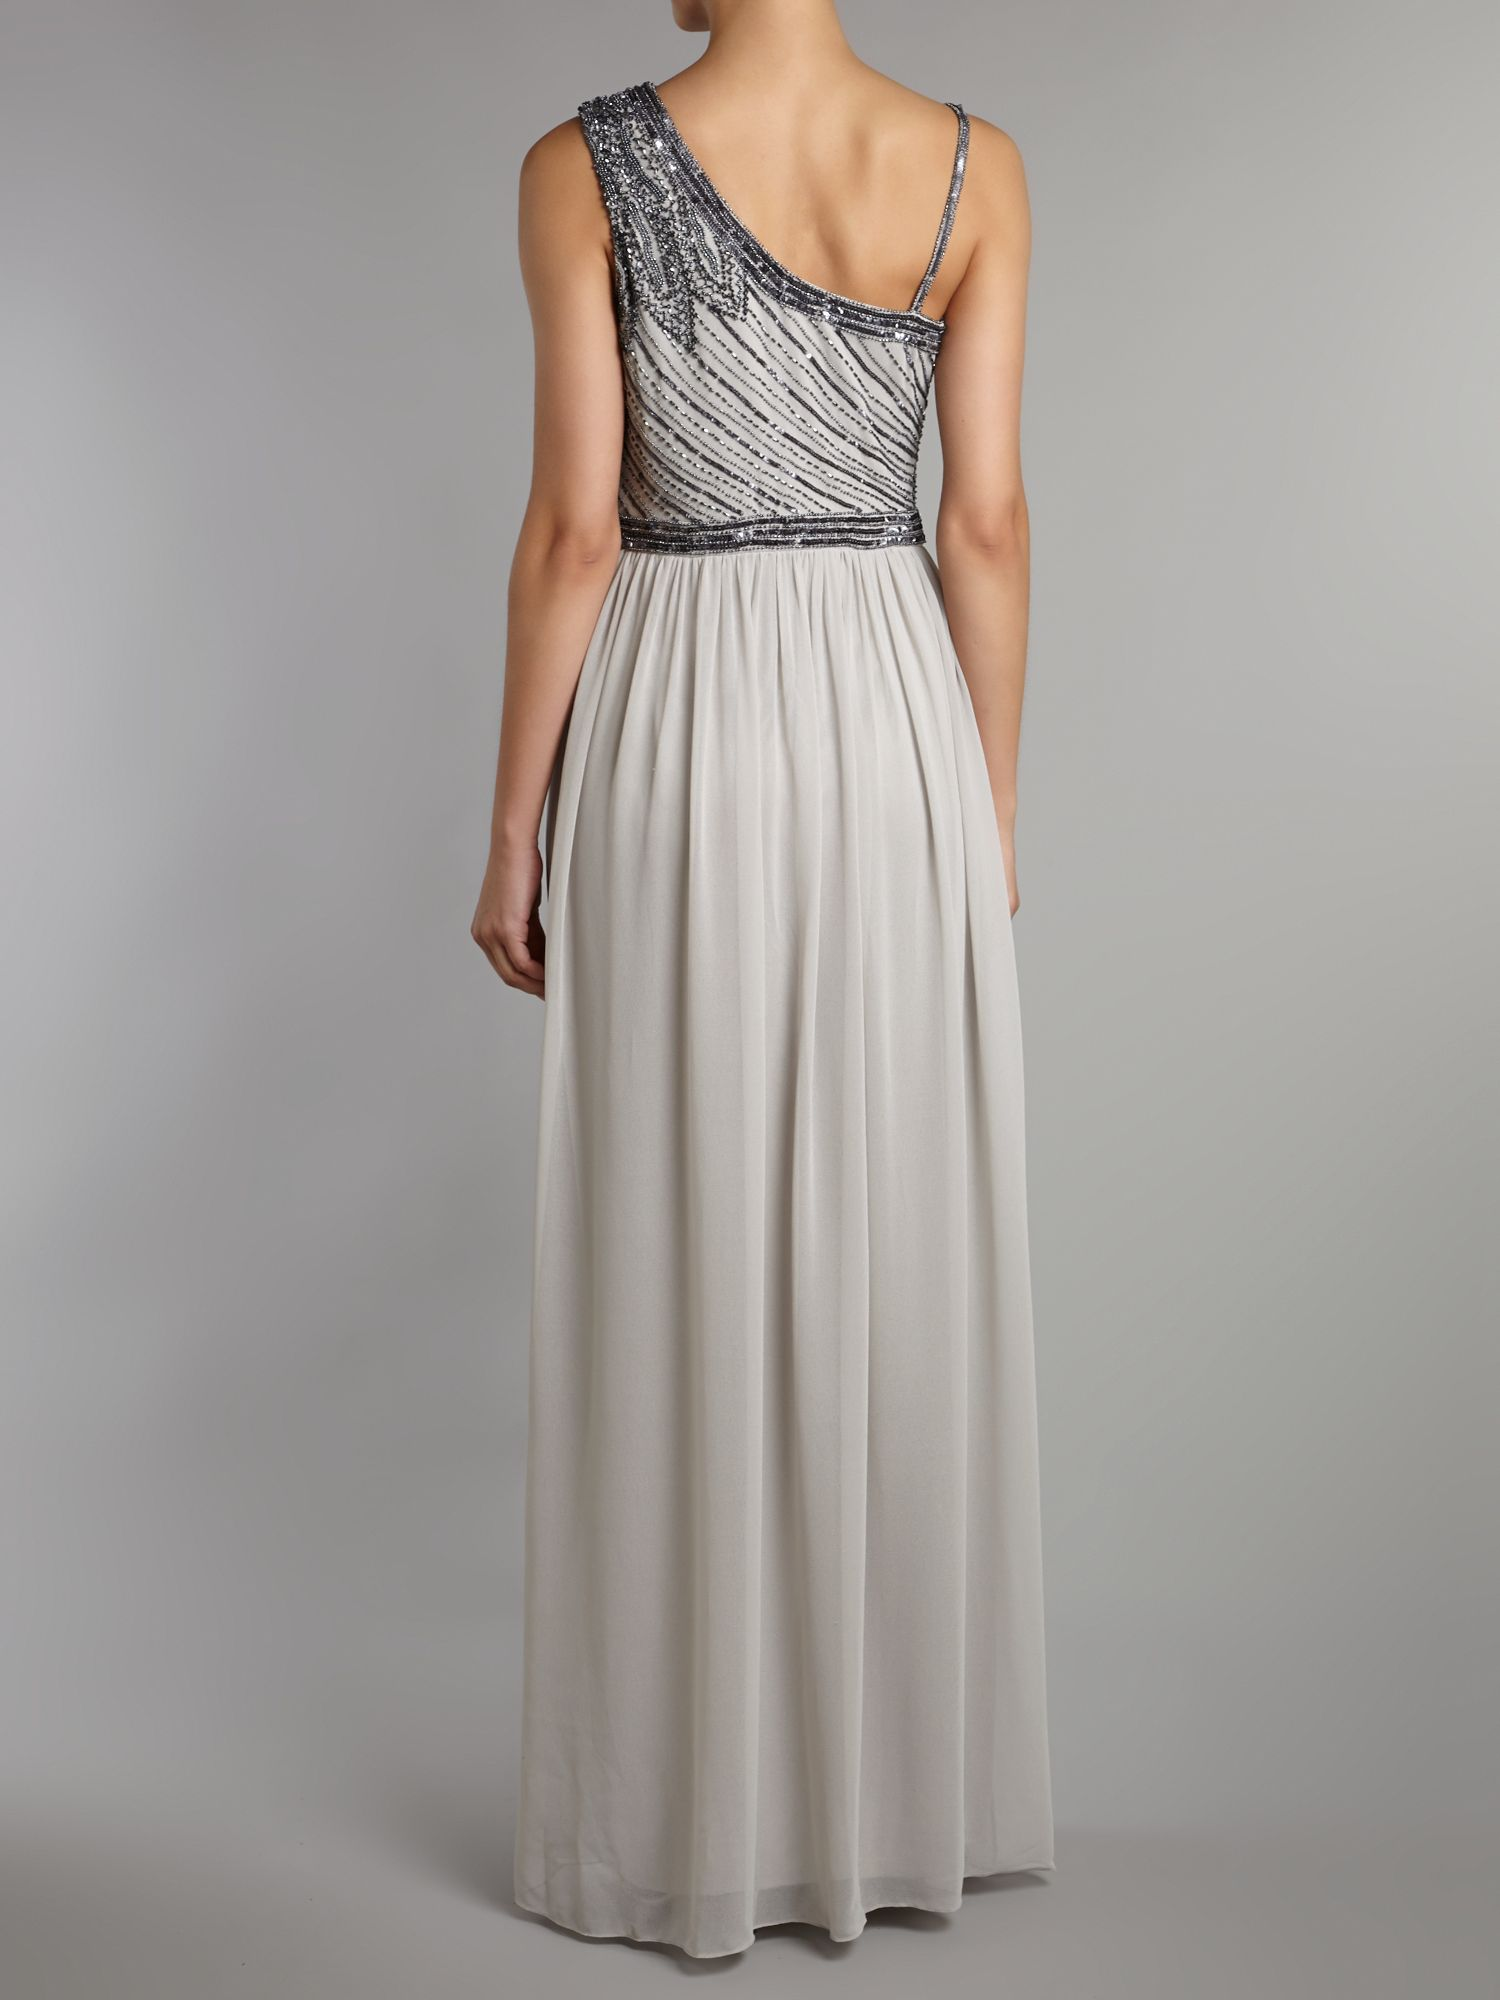 Js Collections Leaf Beaded Chiffon Dress In Gray Lyst